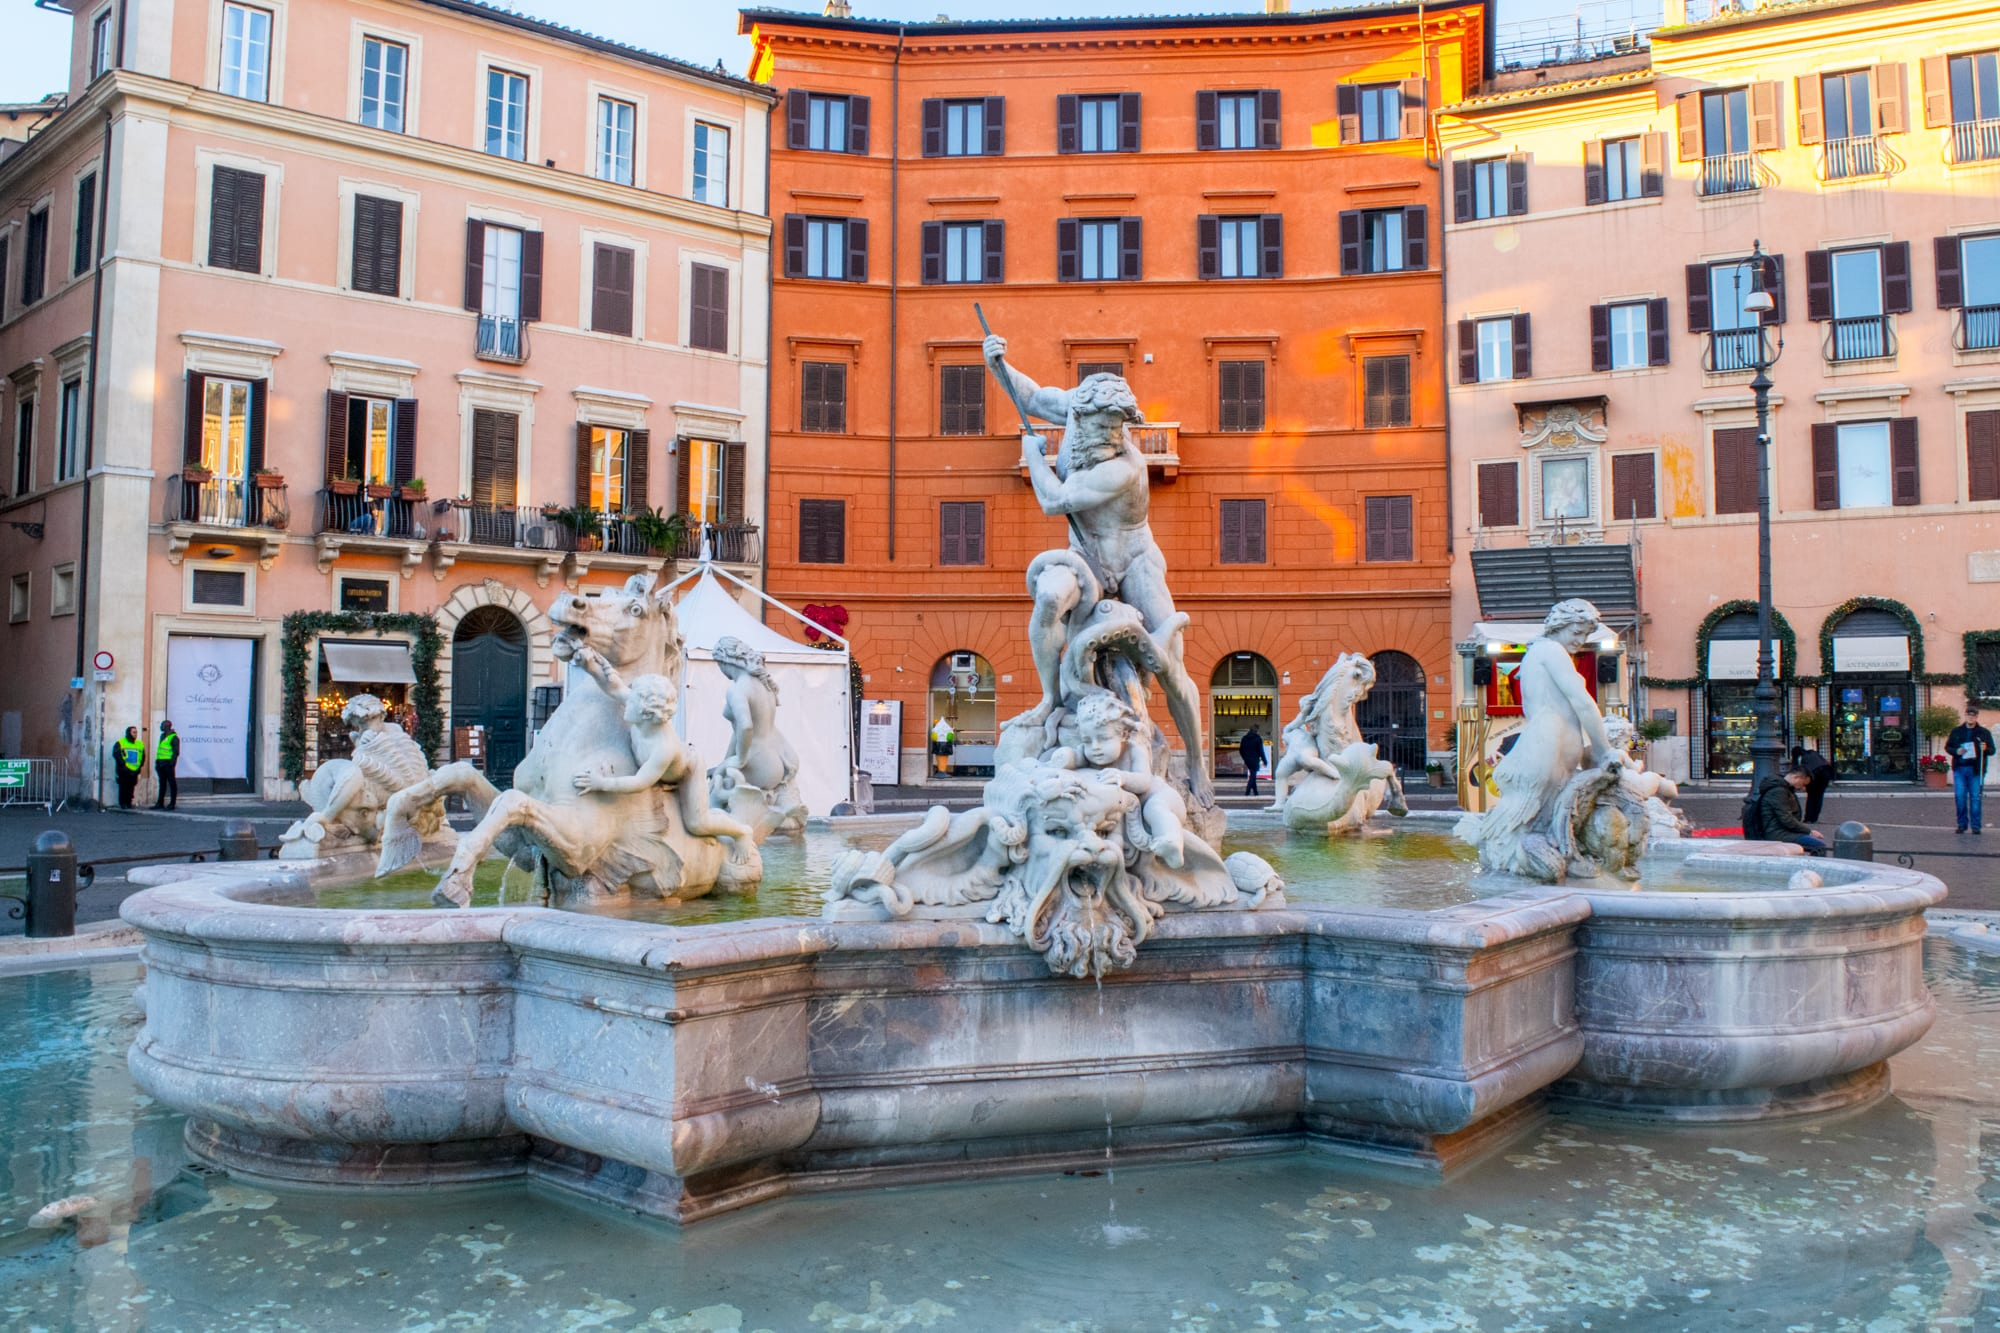 Piazzas in Rome: Fountain in Piazza Navona